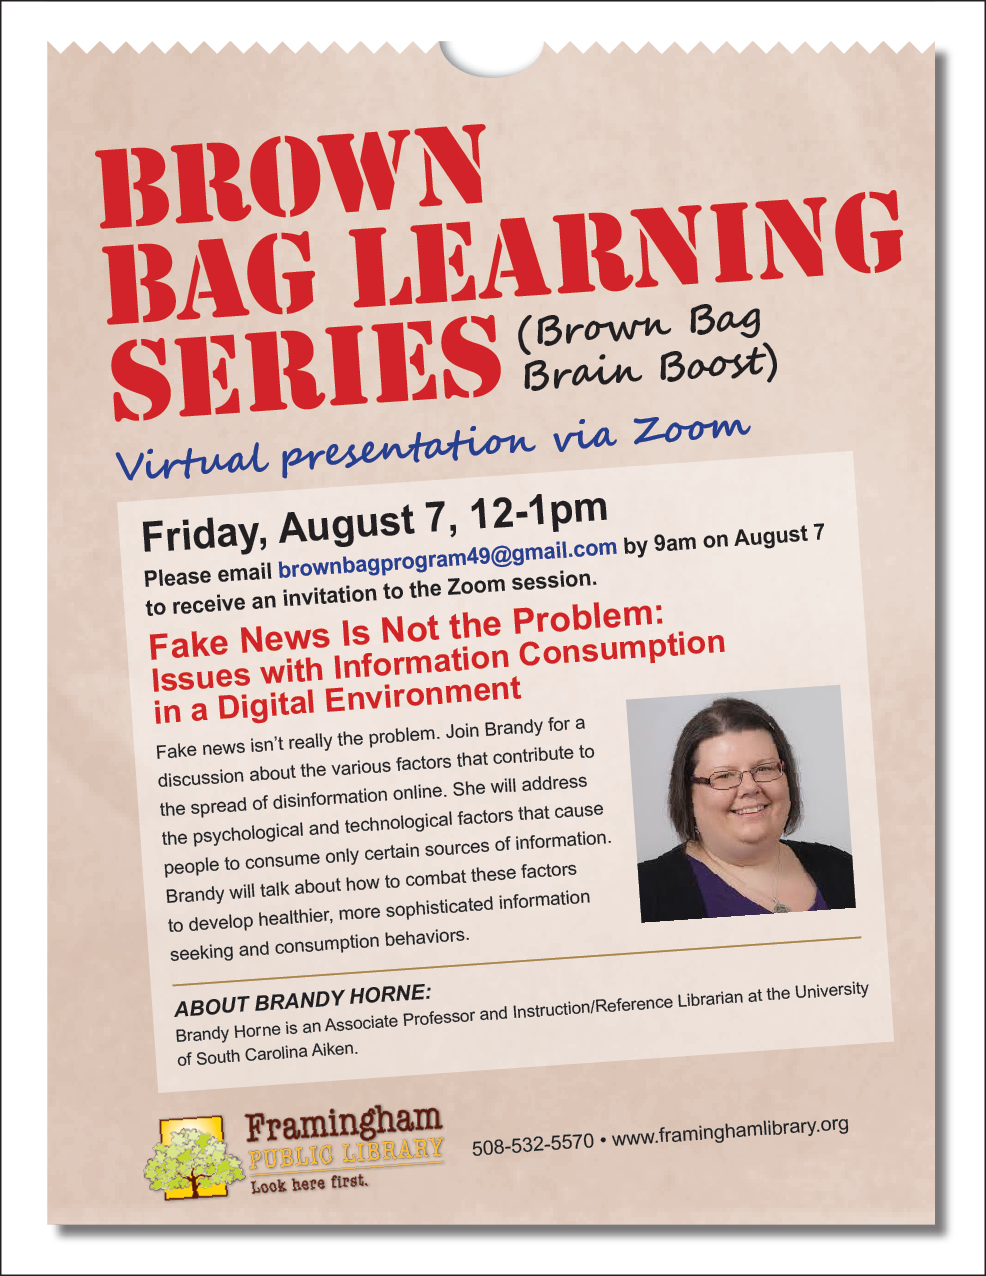 Brown Bag Learning Series: Fake News Is Not the Problem thumbnail Photo